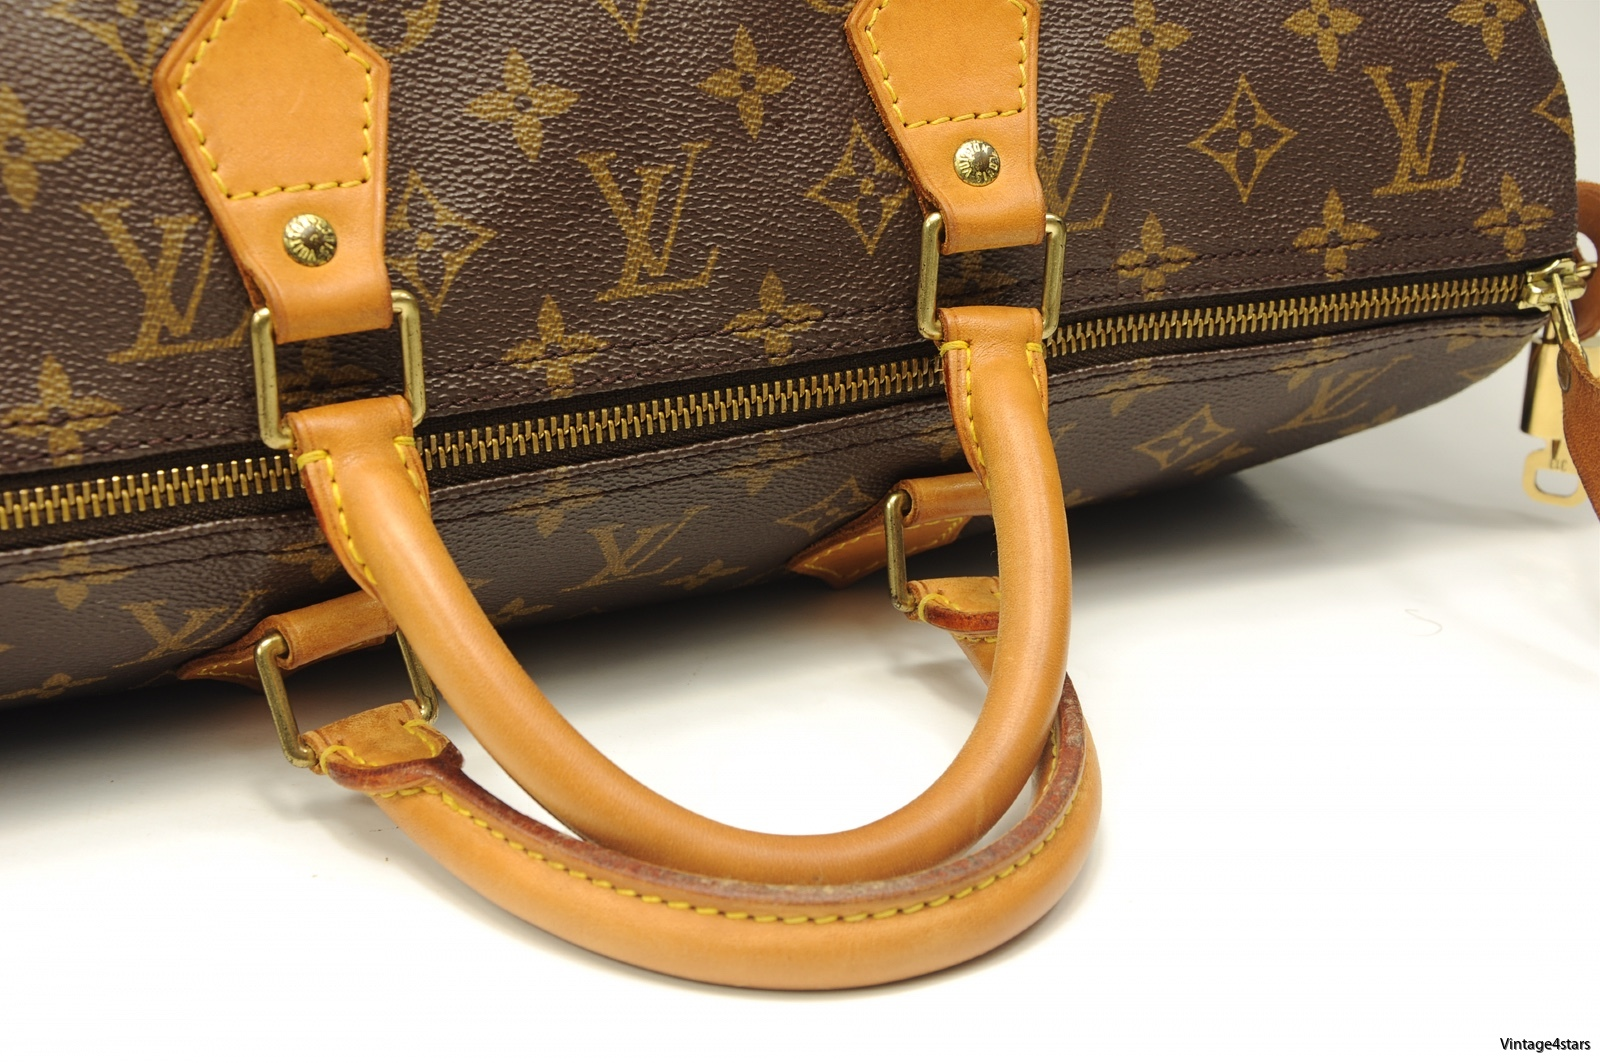 LOUIS VUITTON SPEEDY 40 3